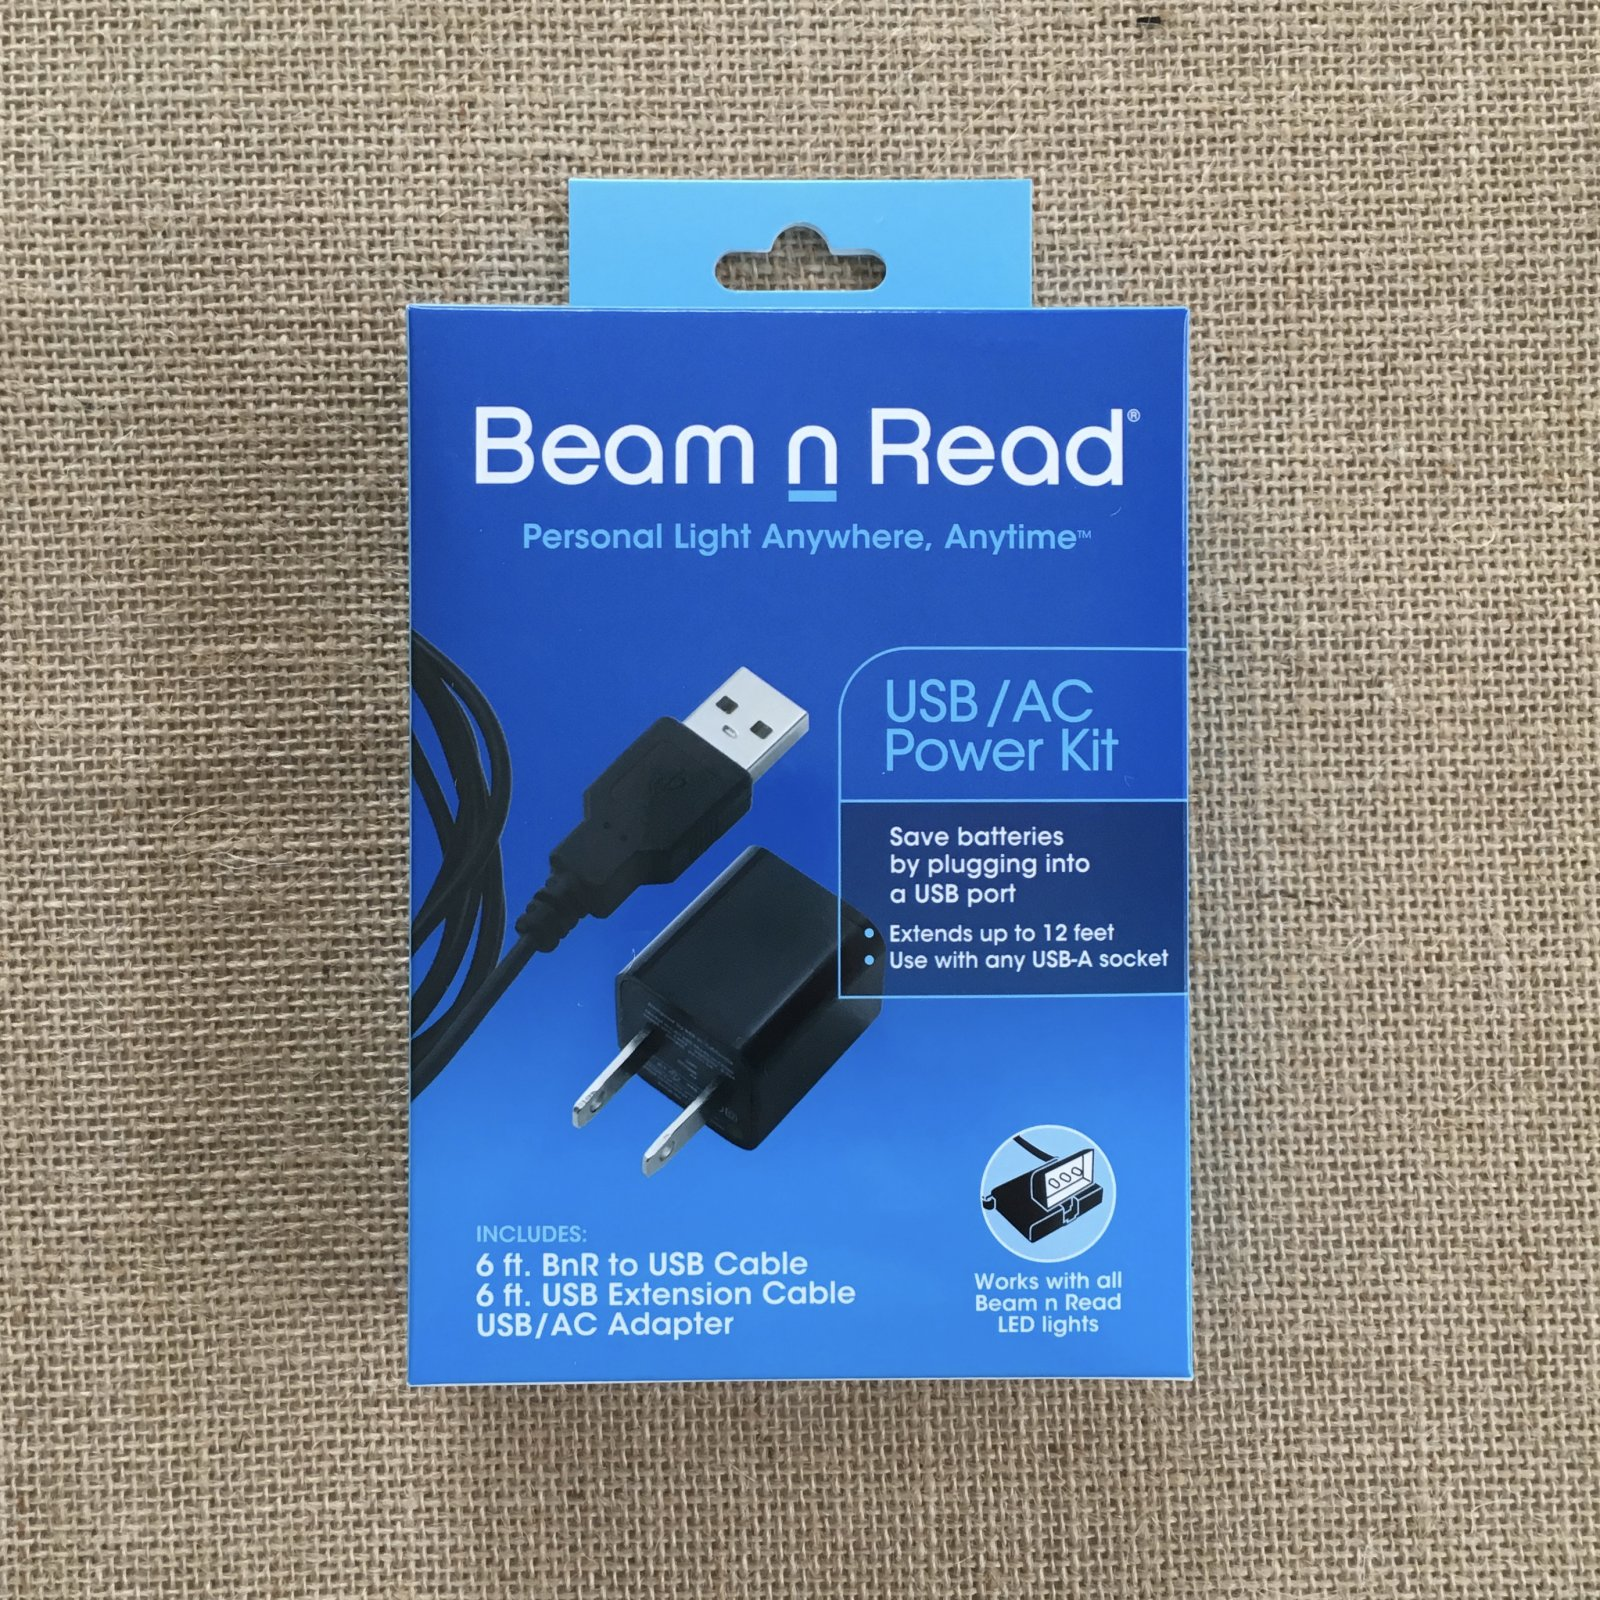 Beam n Read USB/AC Power Kit